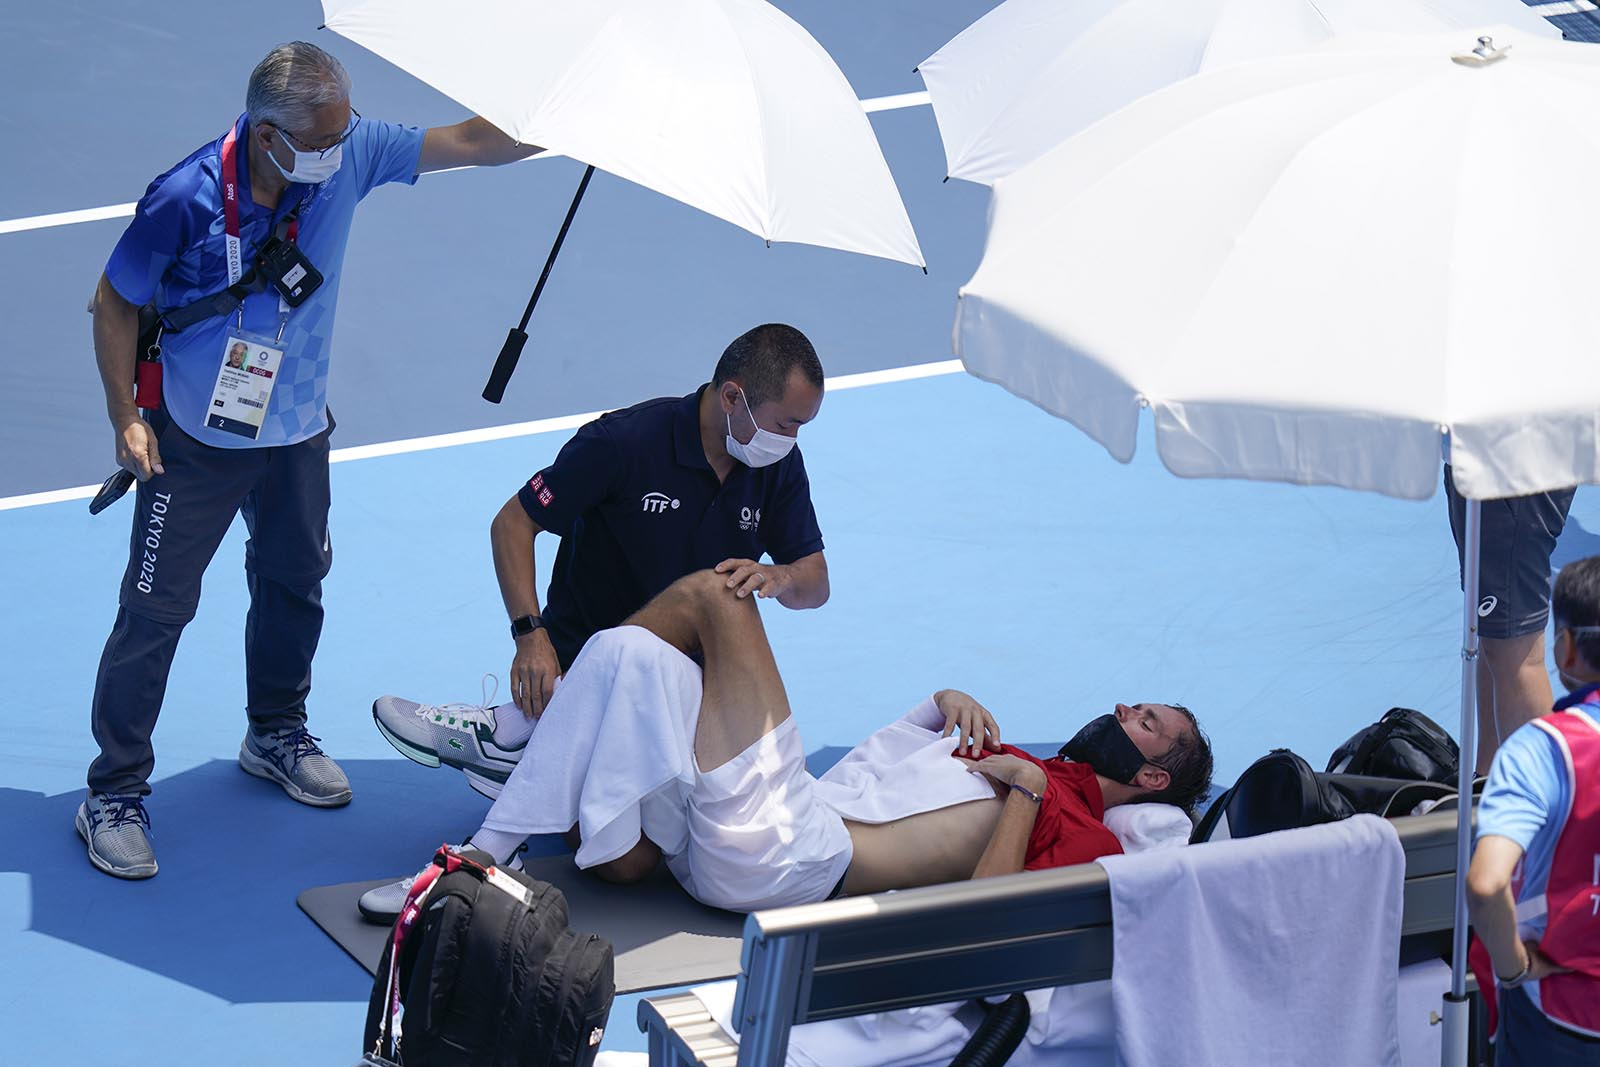 Daniil Medvedev of the Russian Olympic Committee is tended to during a third round men's tennis match on Wednesday.